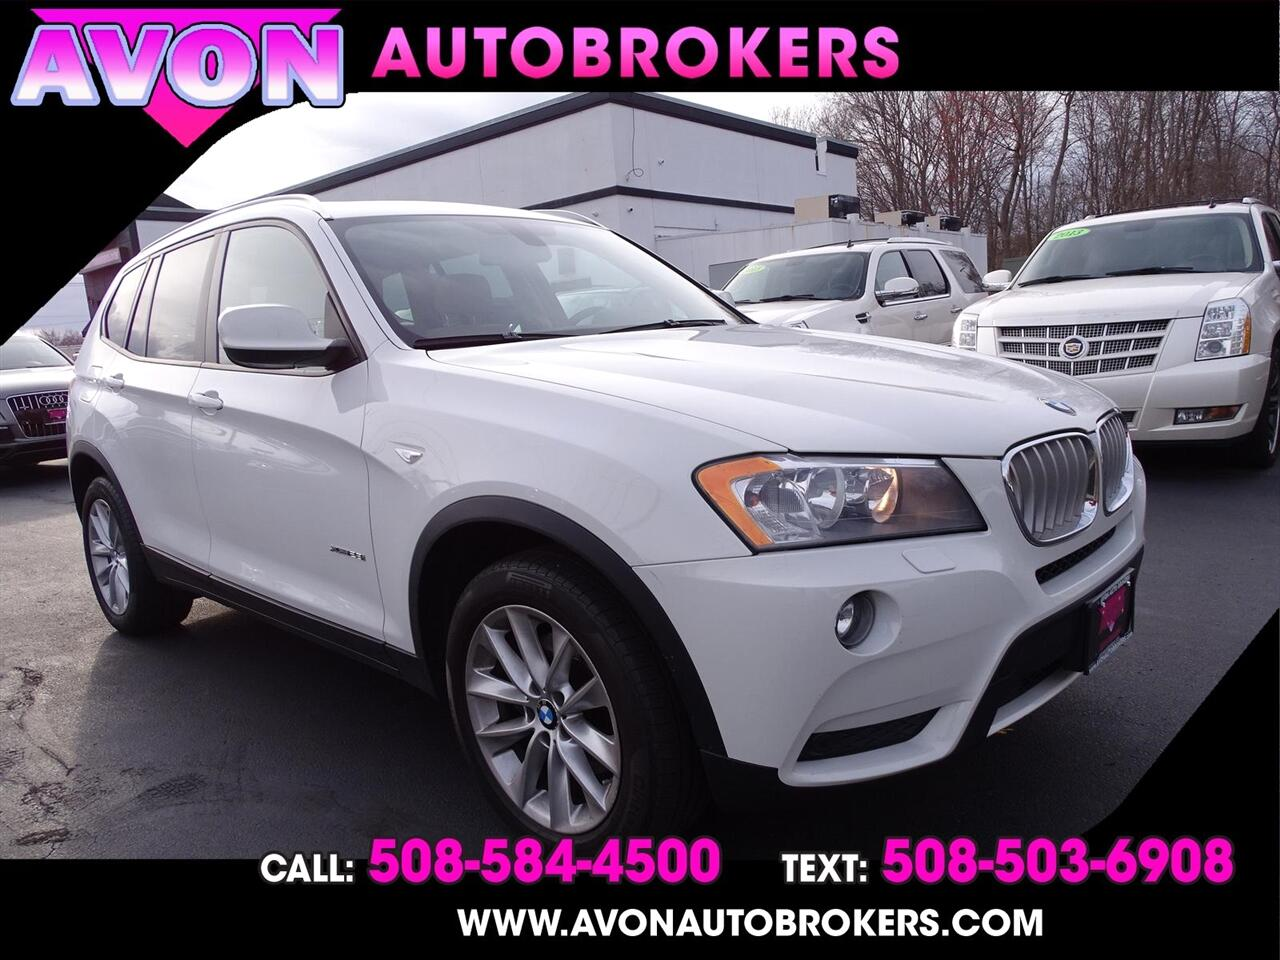 Used Bmw X3 Avon Ma